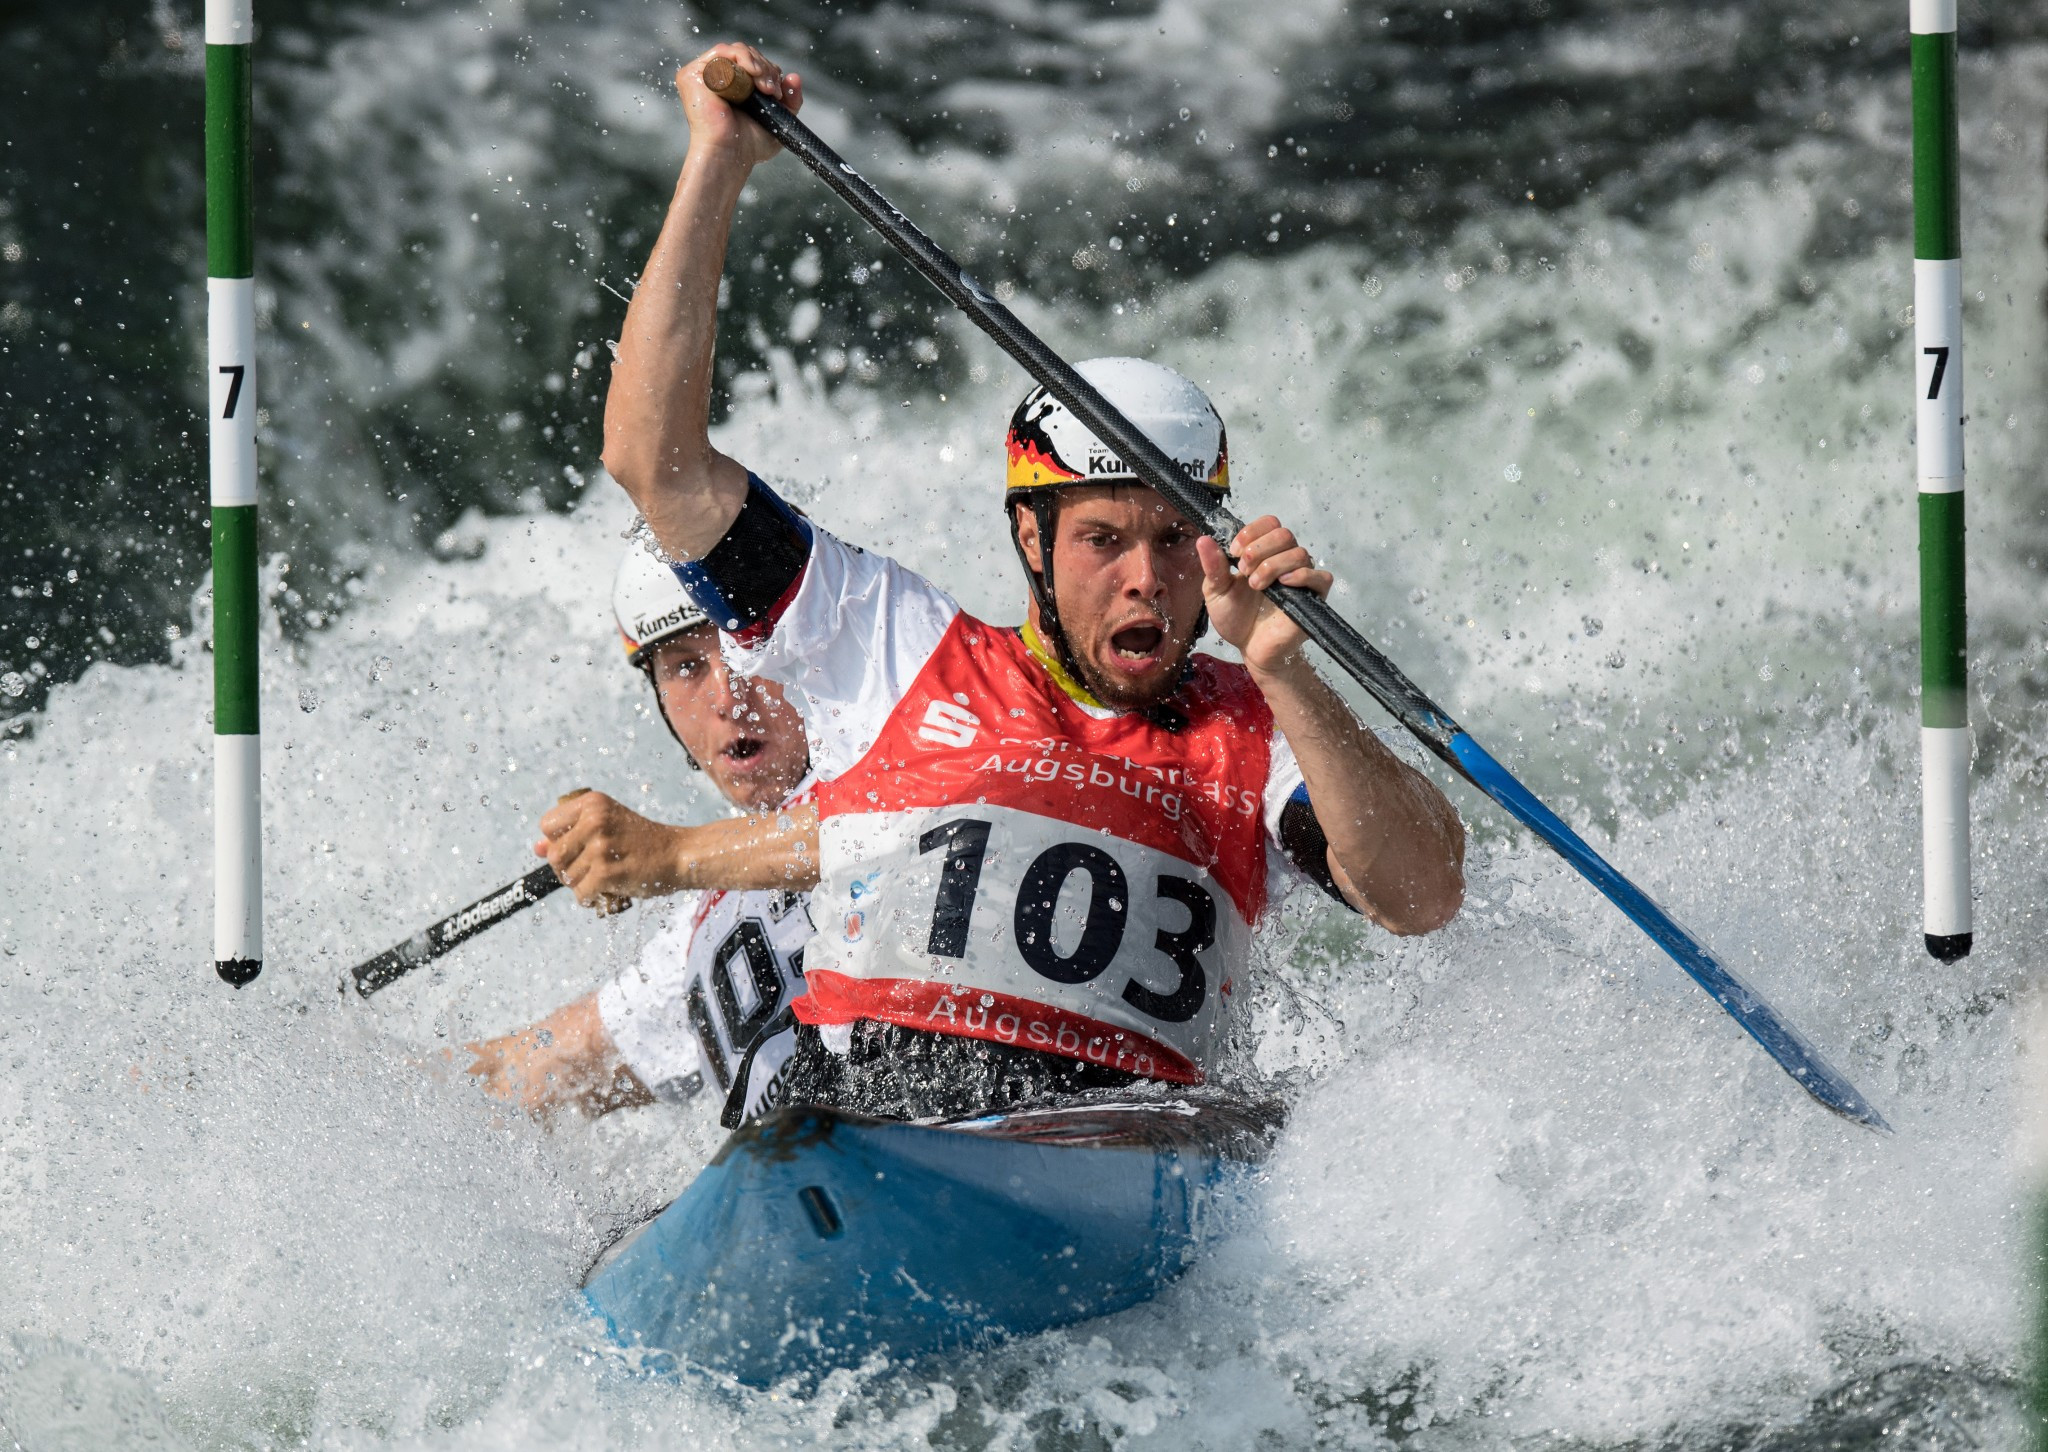 Behling and Becker claim overall title on dramatic day at ICF Canoe Slalom World Cup